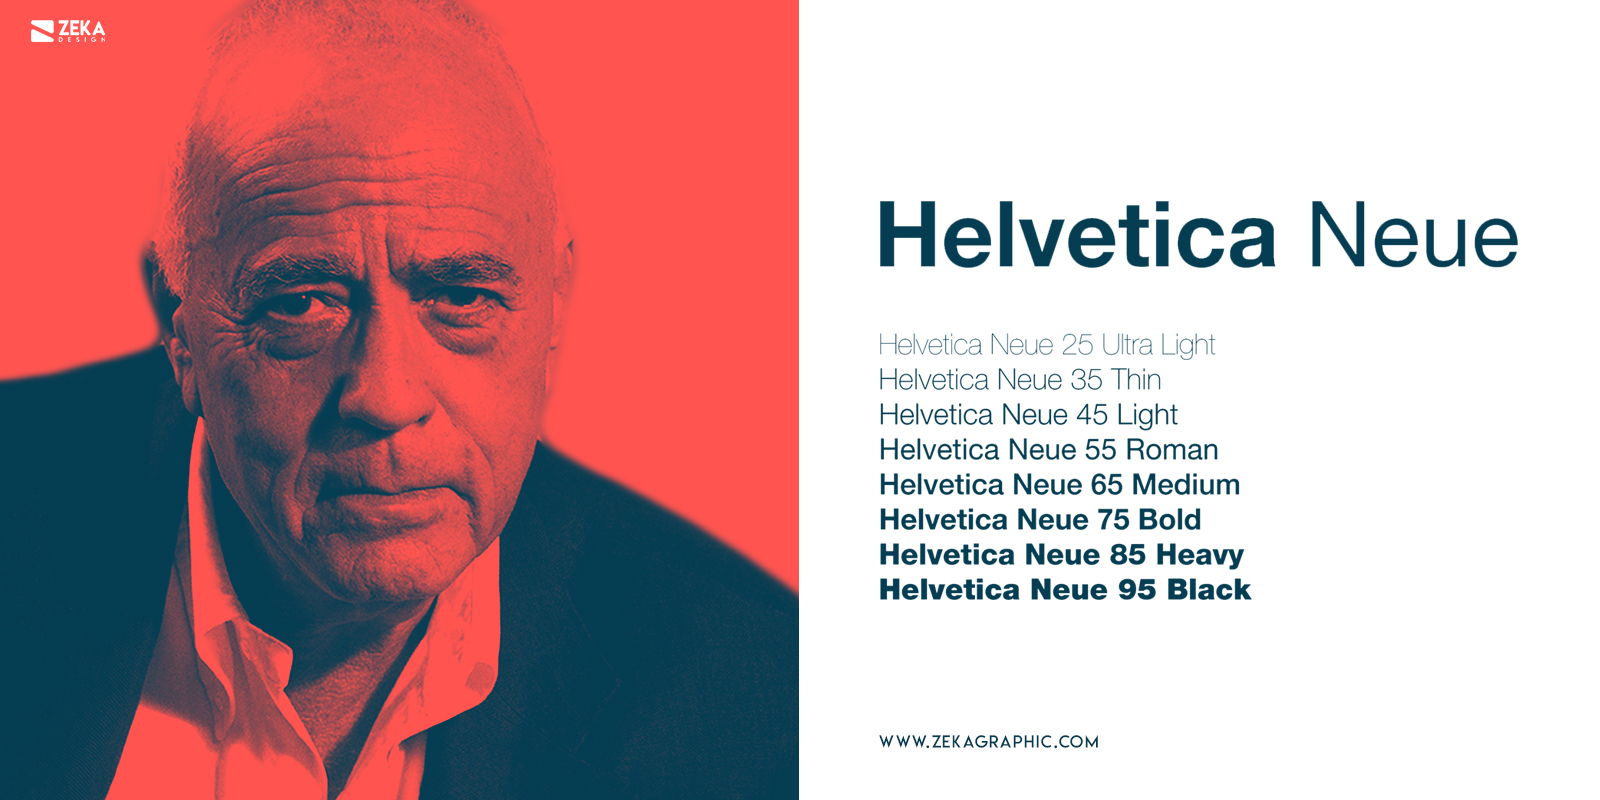 Helvetica Neue Fonts Every Graphic Designer Should Have